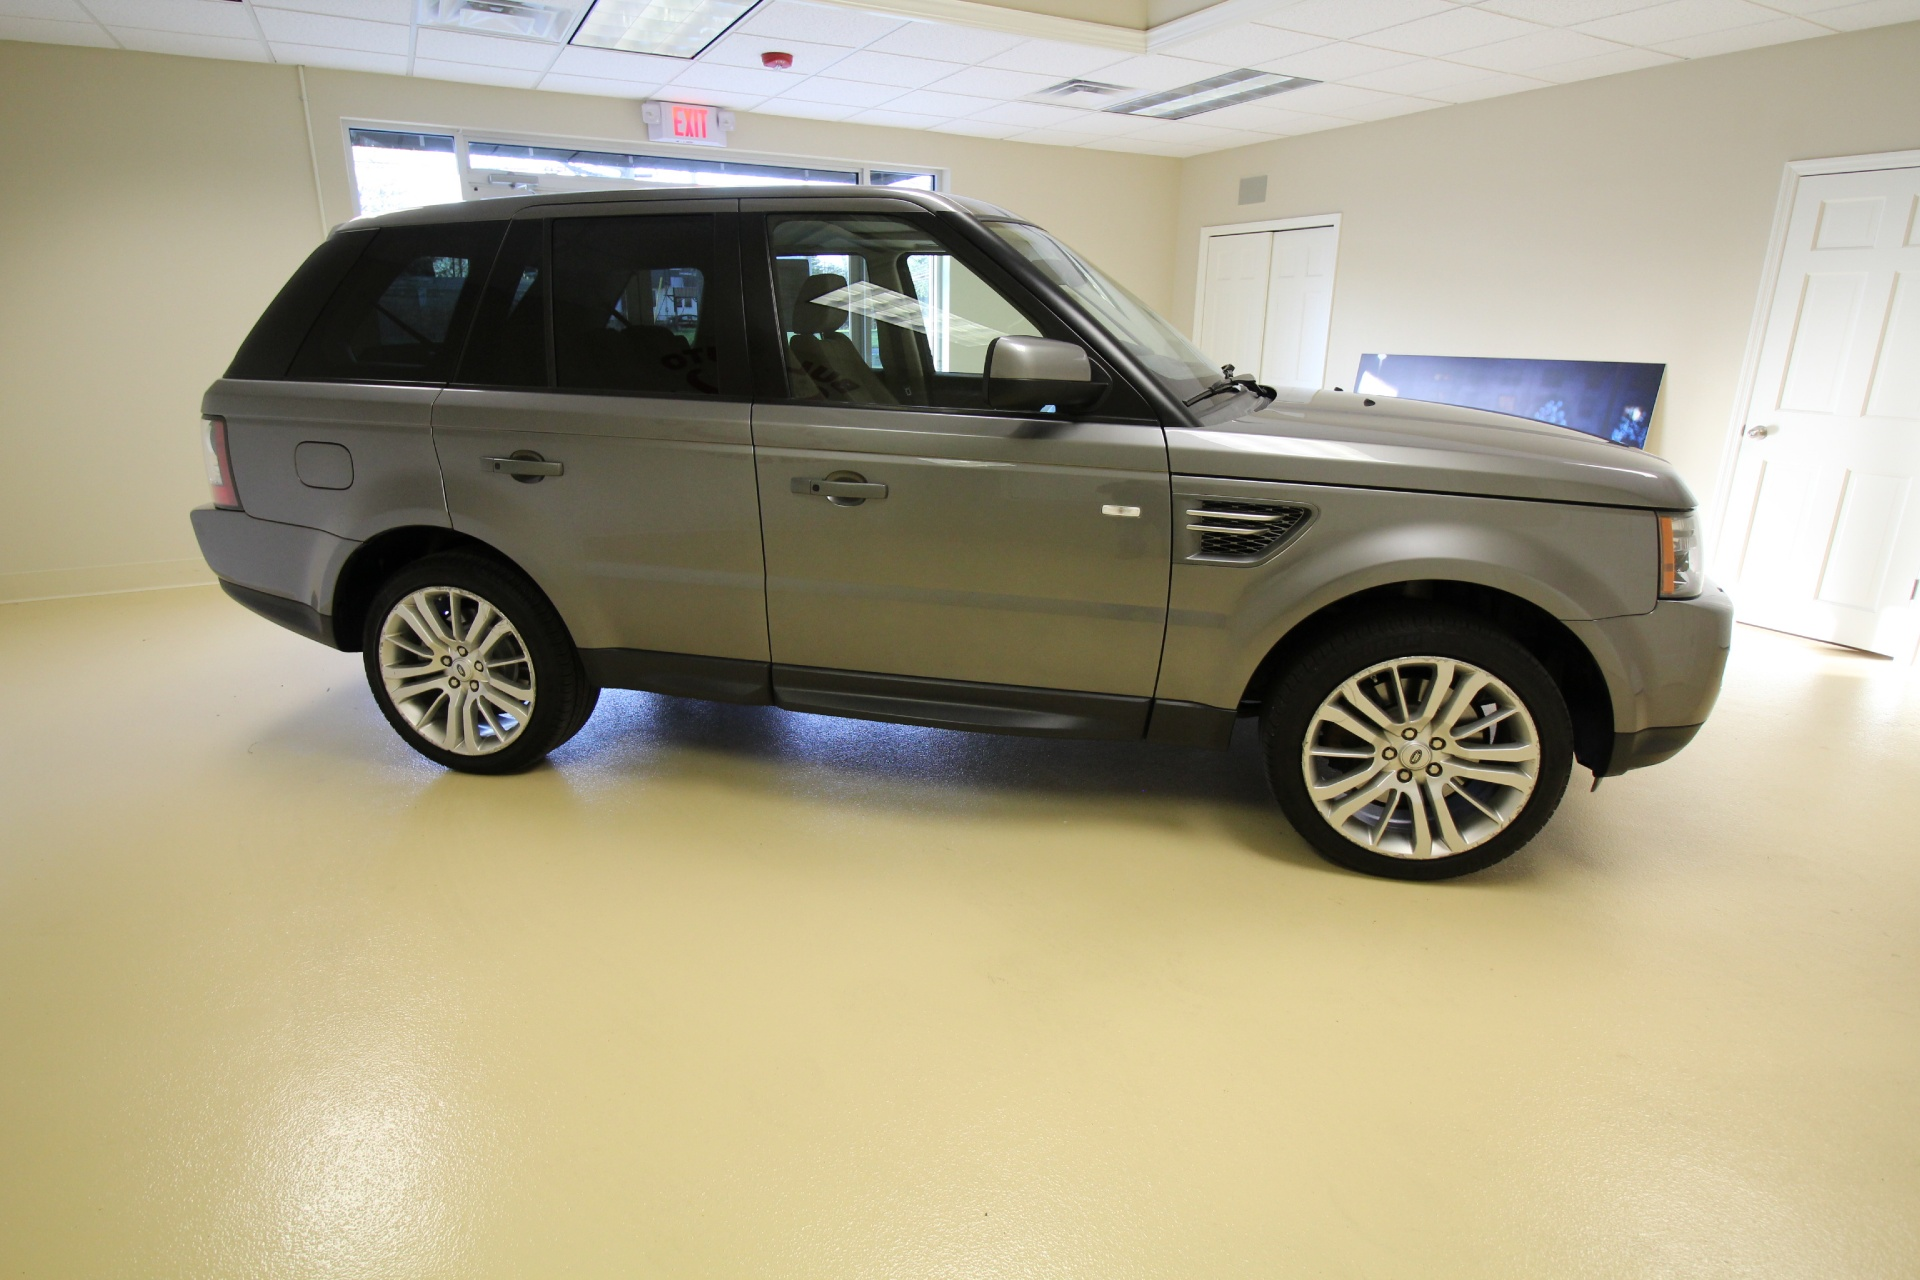 2010 Land Rover Range Rover Sport HSE LUX LUXURY VERY CLEAN LOW